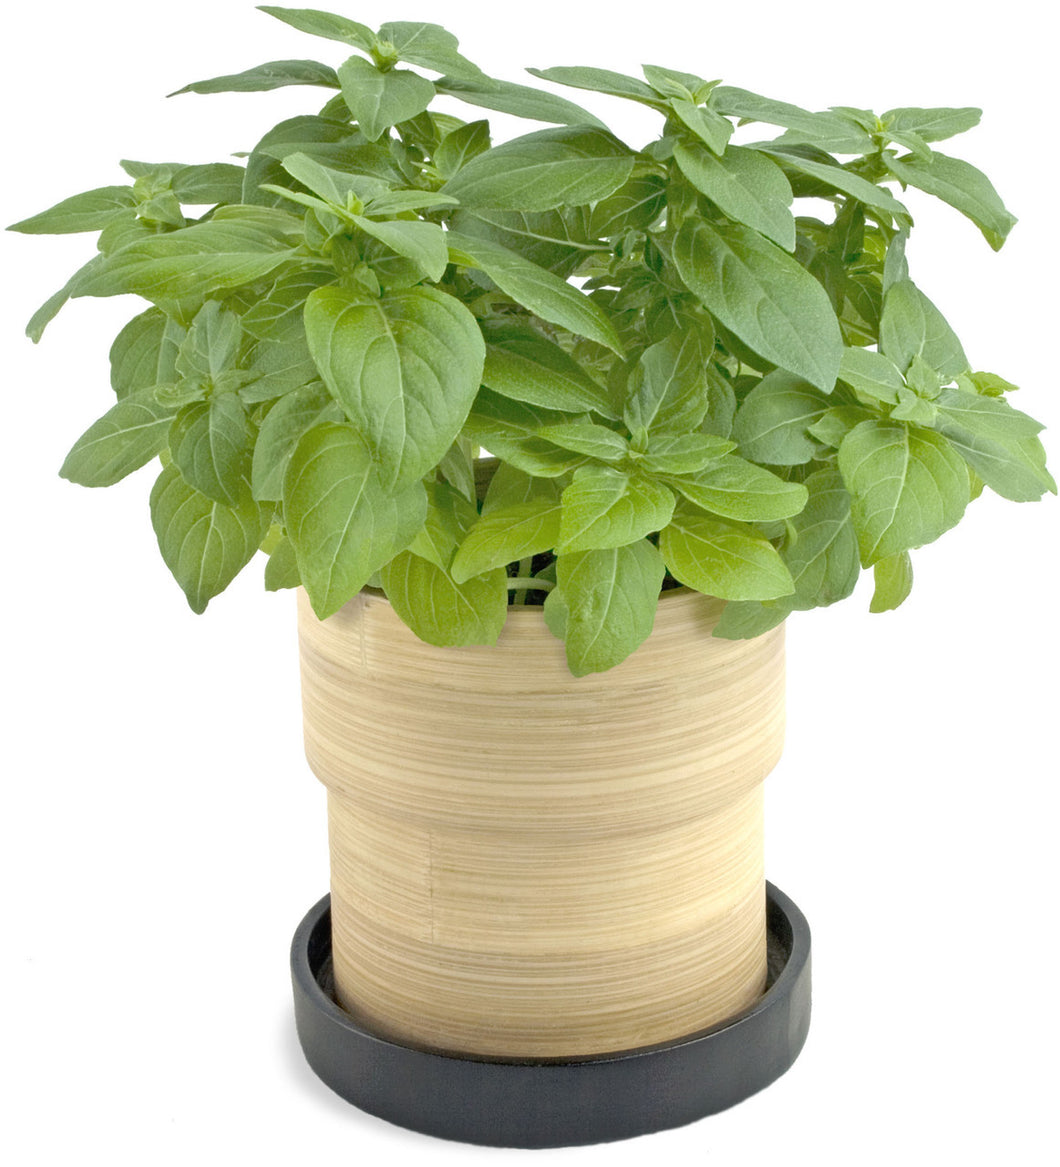 Bamboo Grow Pot